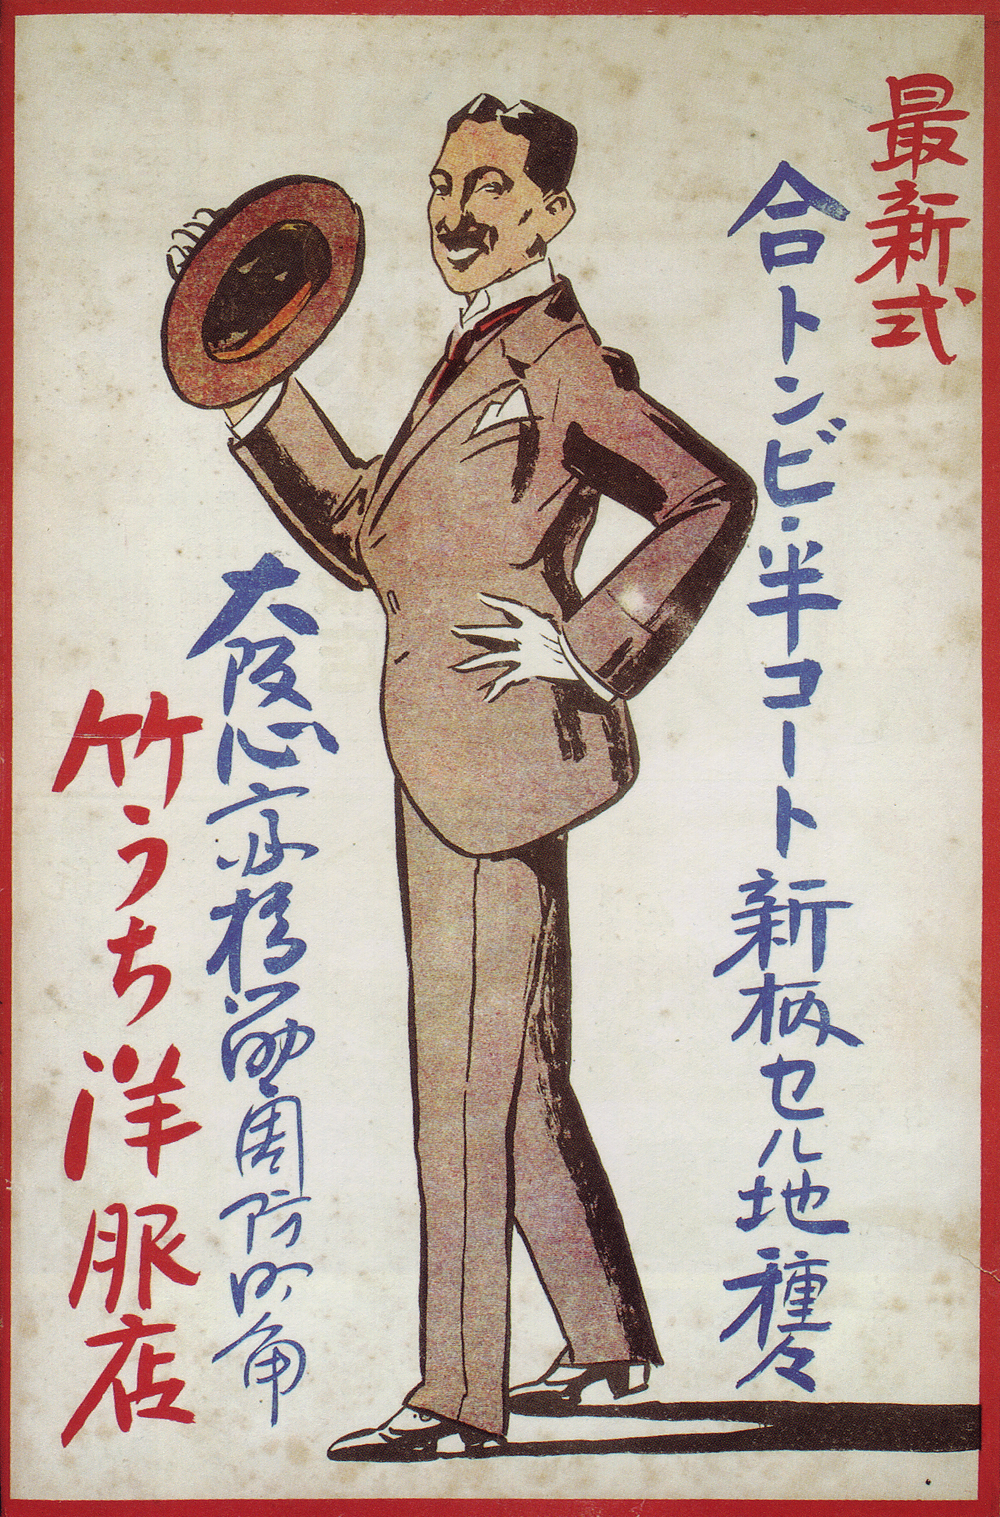 1920 Takeuchi clothing store ad in Doutoubori magazine 1small.jpg